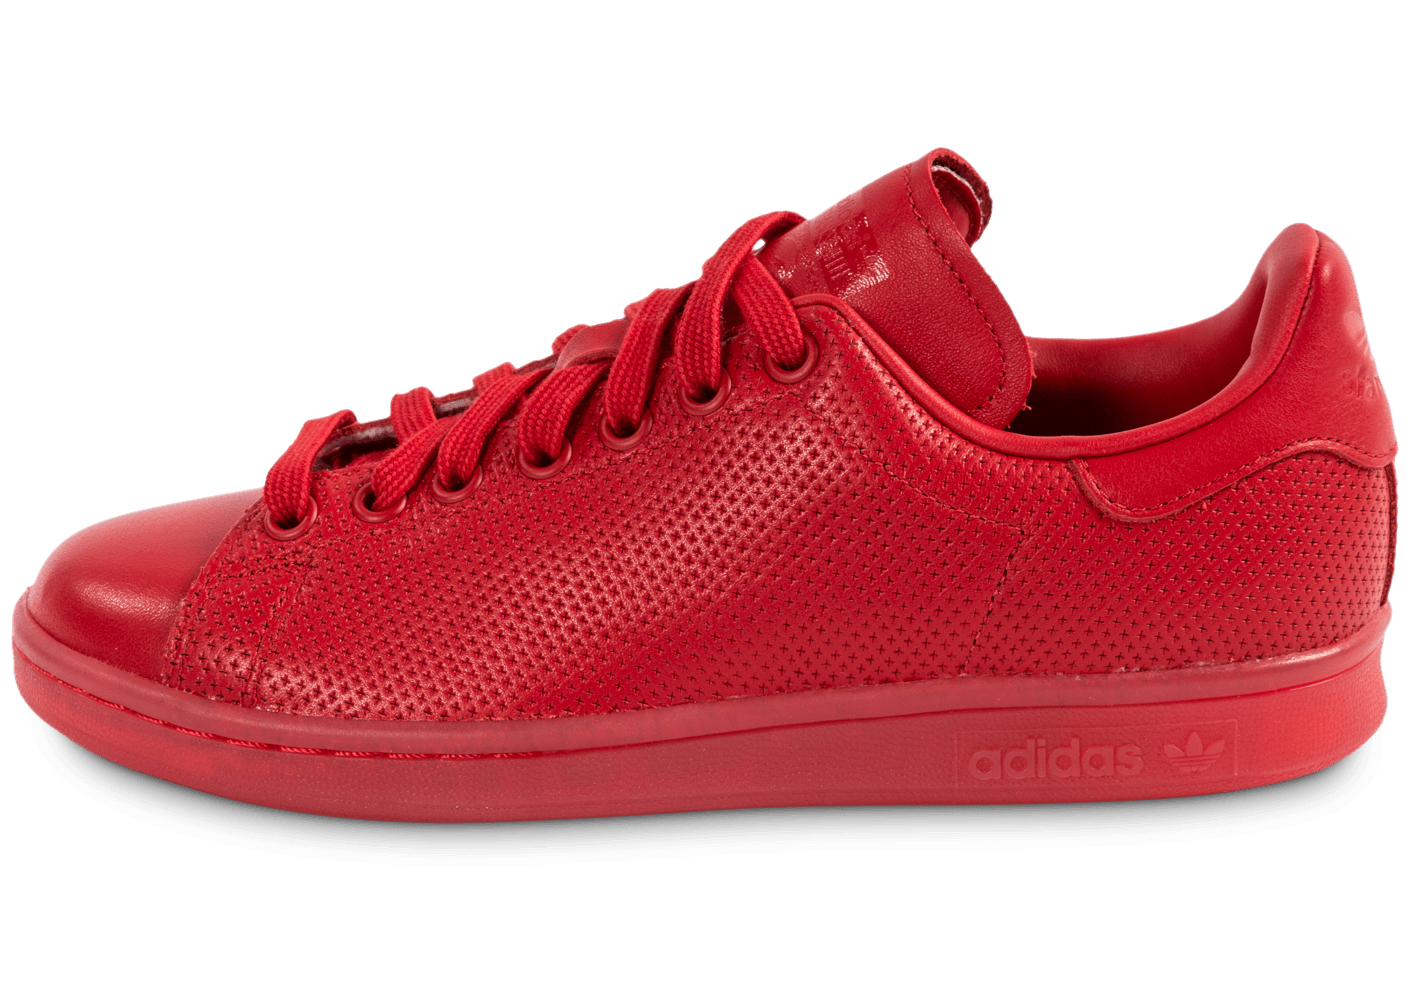 Adidas Stan Smith Saumon